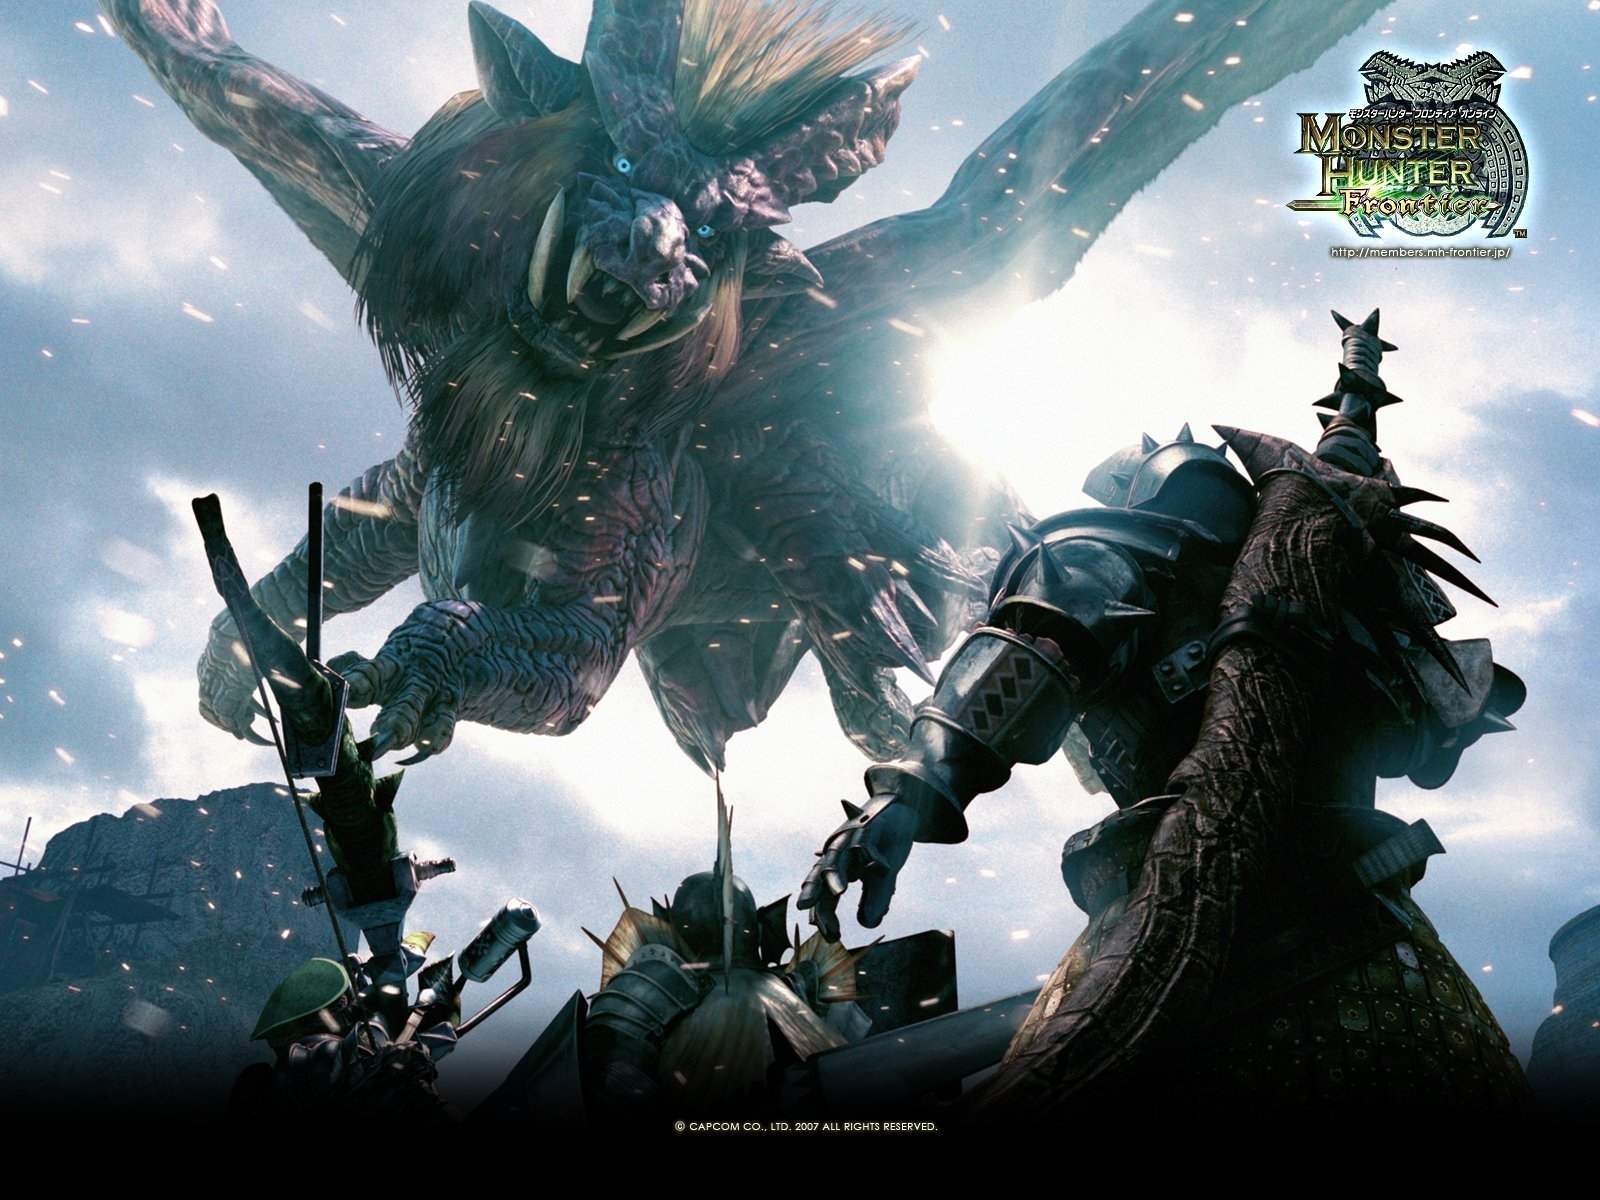 130 monster hunter hd wallpapers | background images - wallpaper abyss